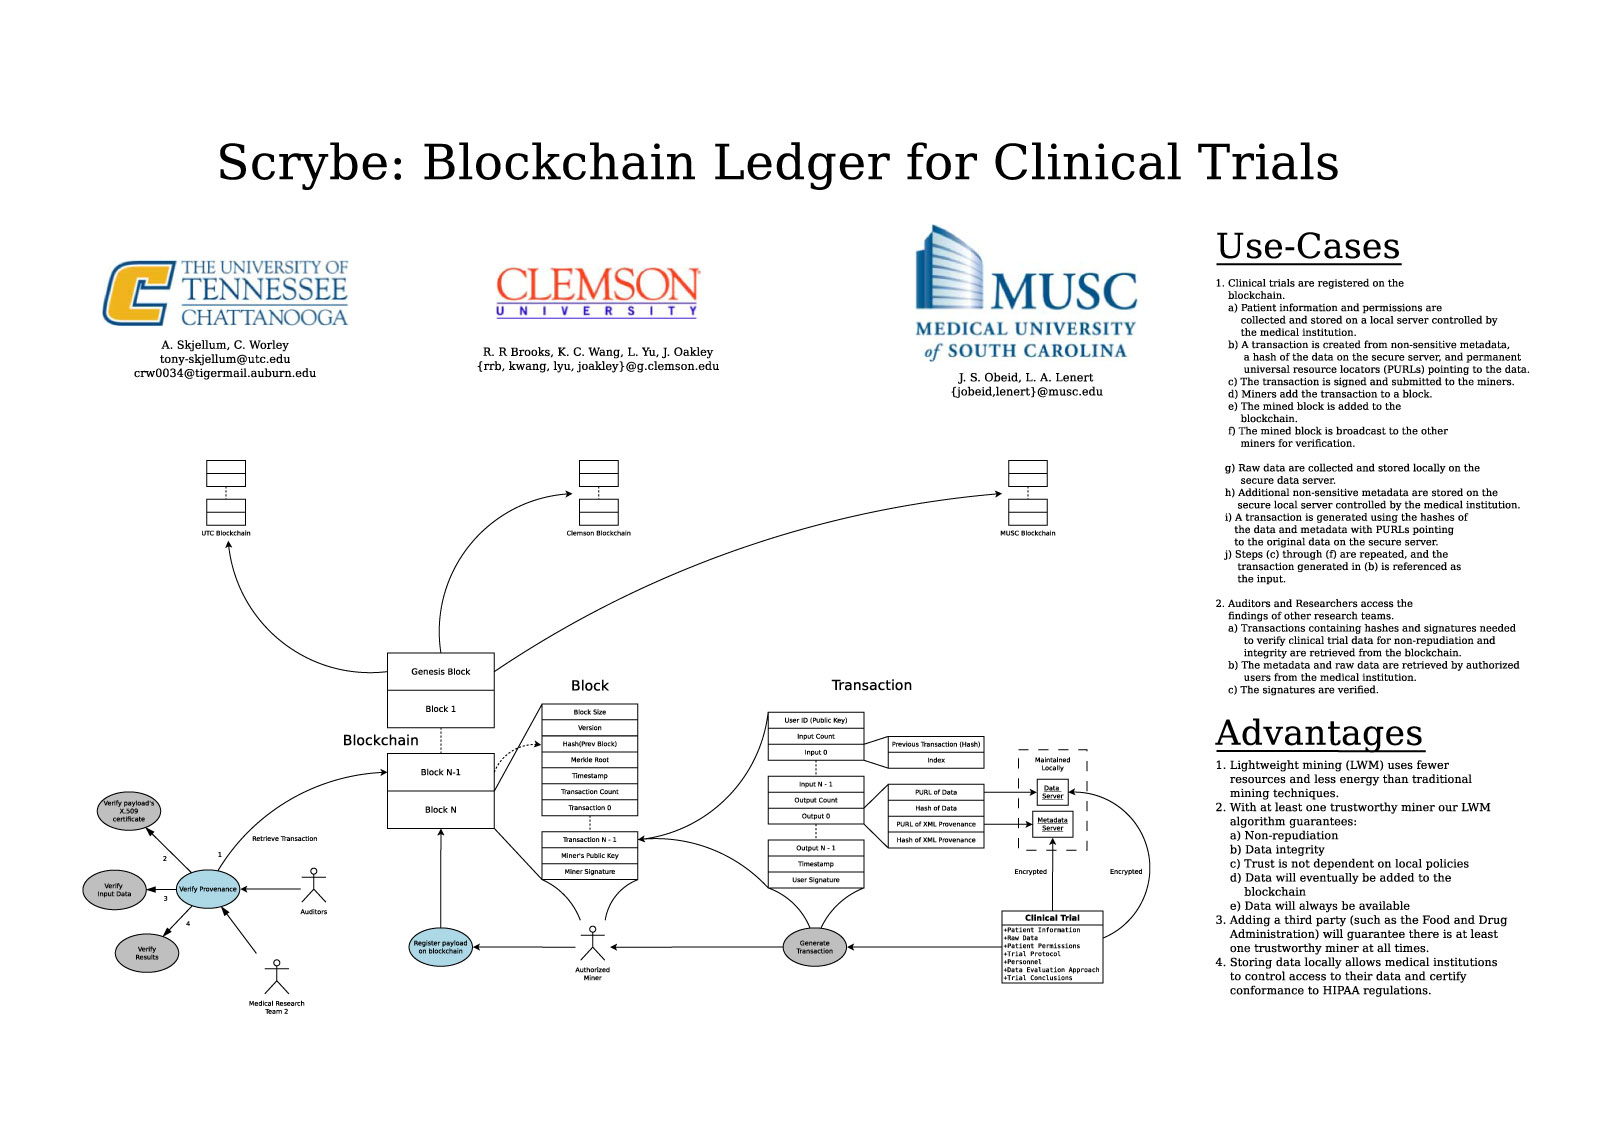 Scrybe: A Blockchain Ledger for Clinical Trials